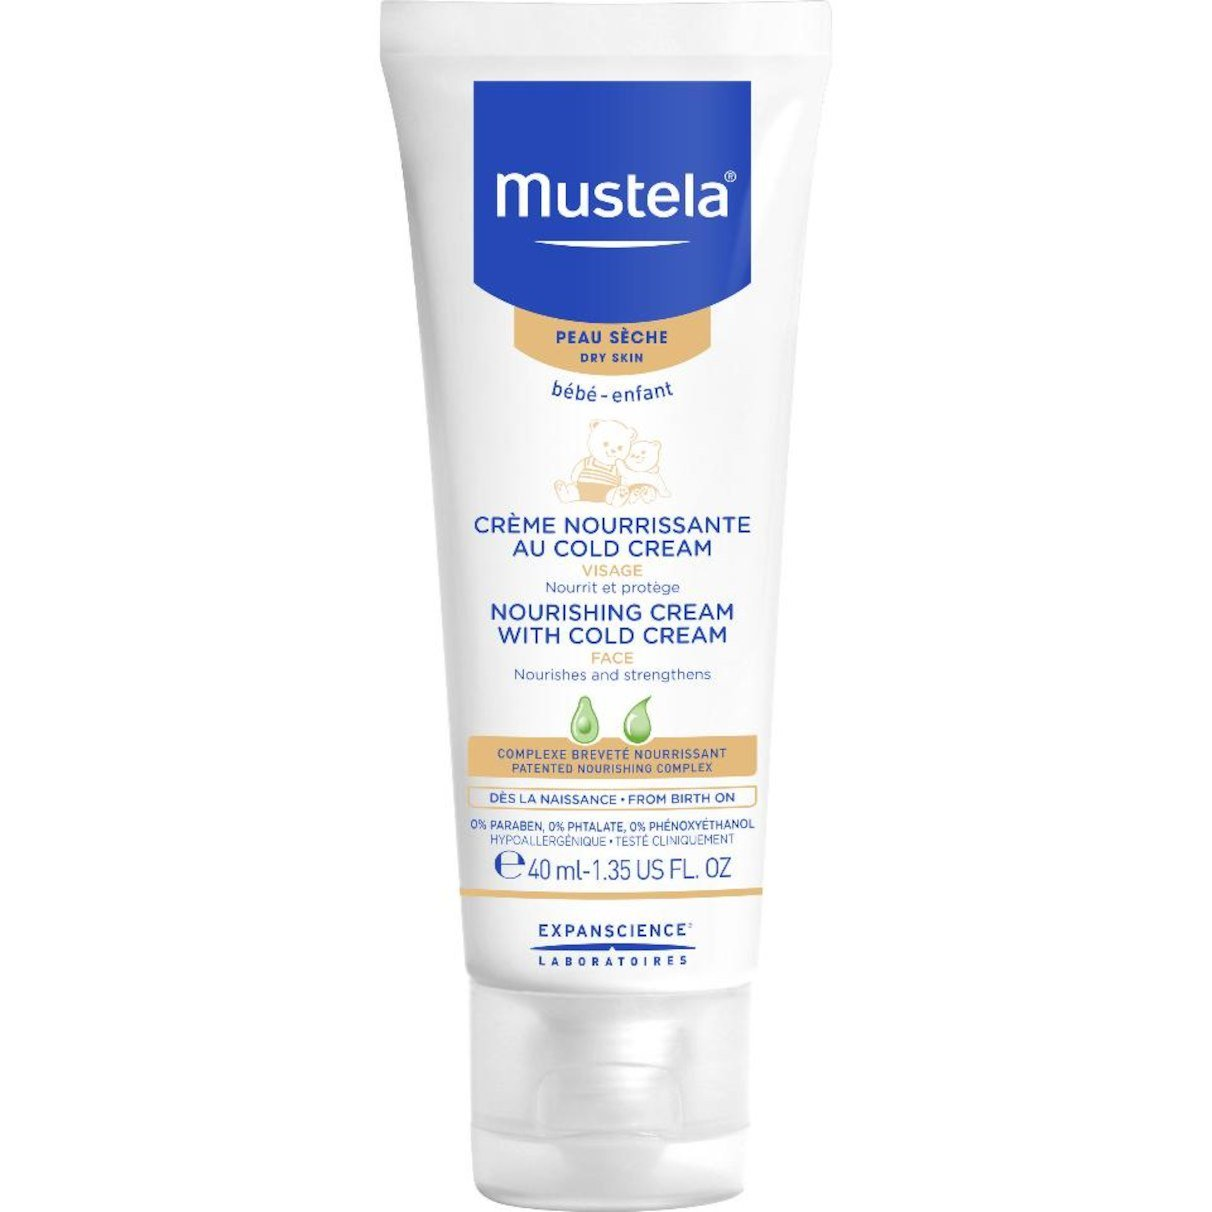 Mustela Facial Nourishing Cream with cold cream, 40Ml